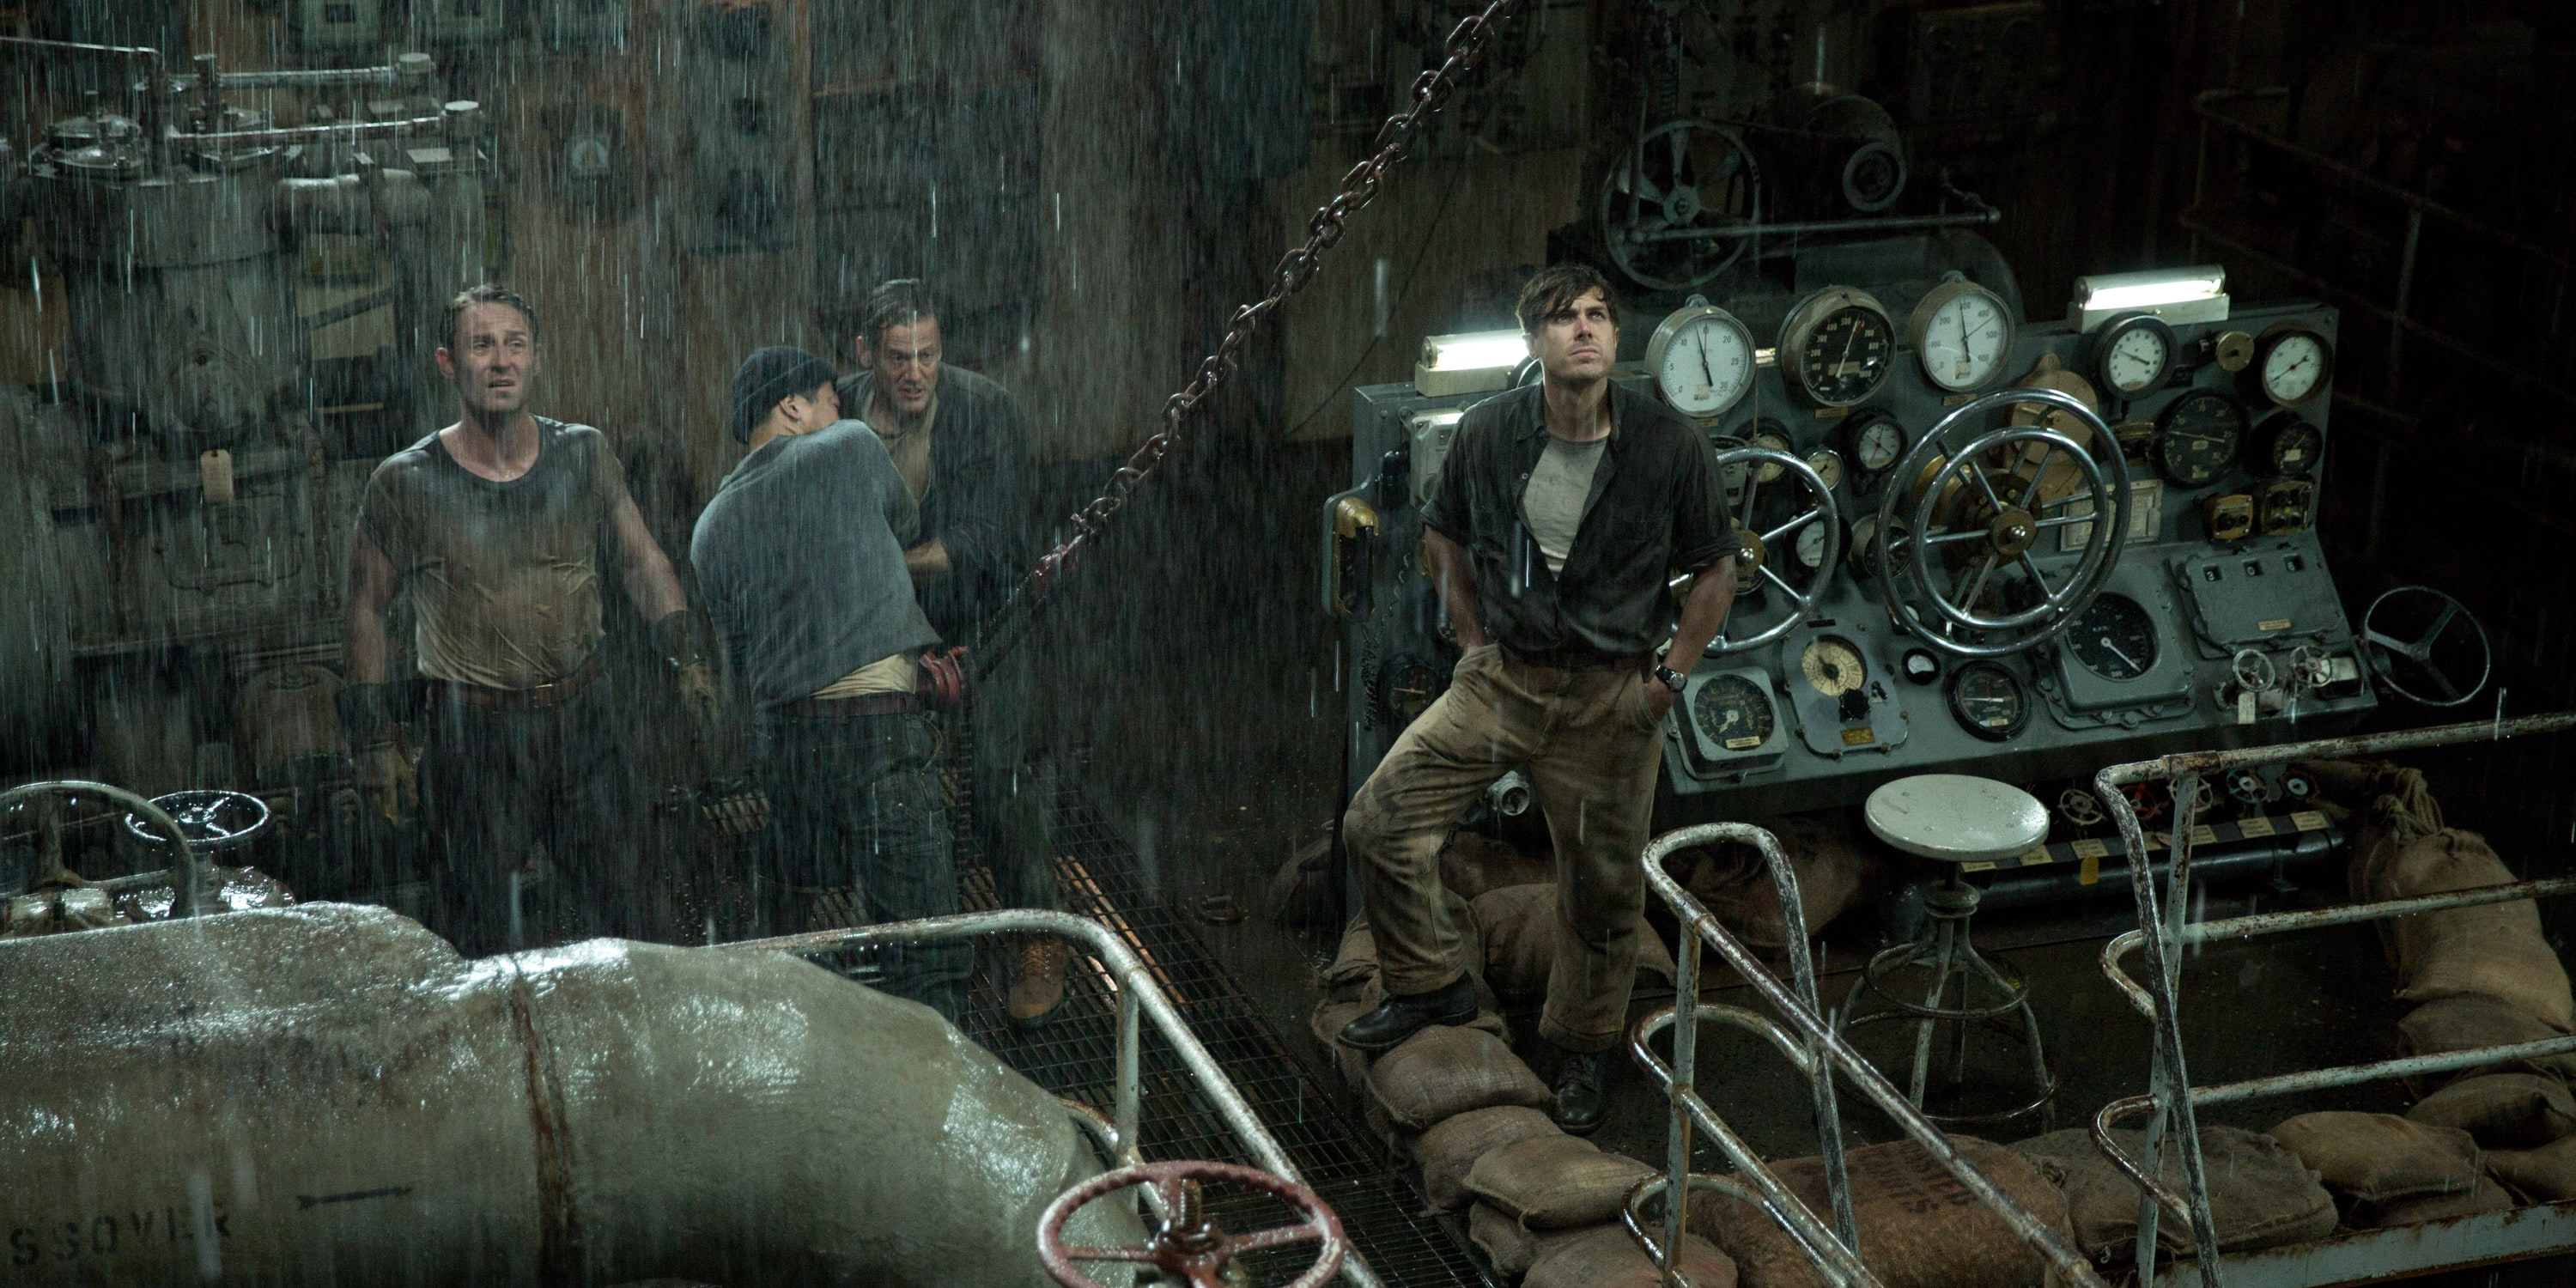 The Finest Hours Background